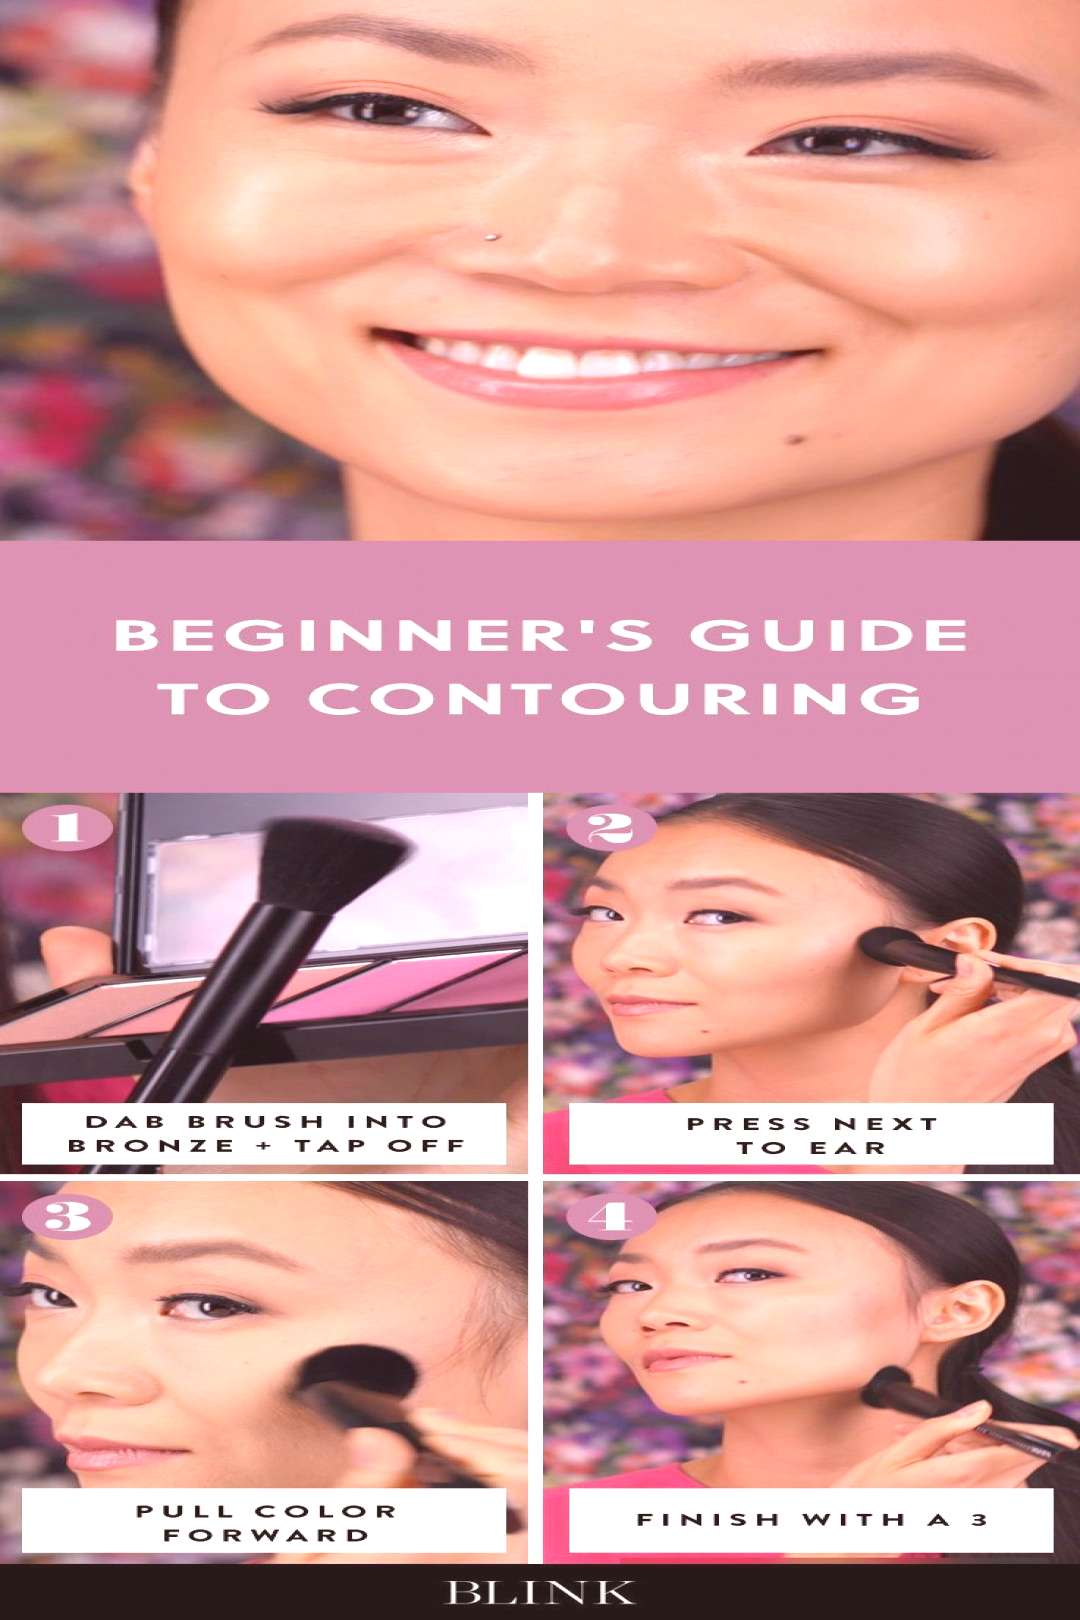 How to Contour for Beginners tutorial